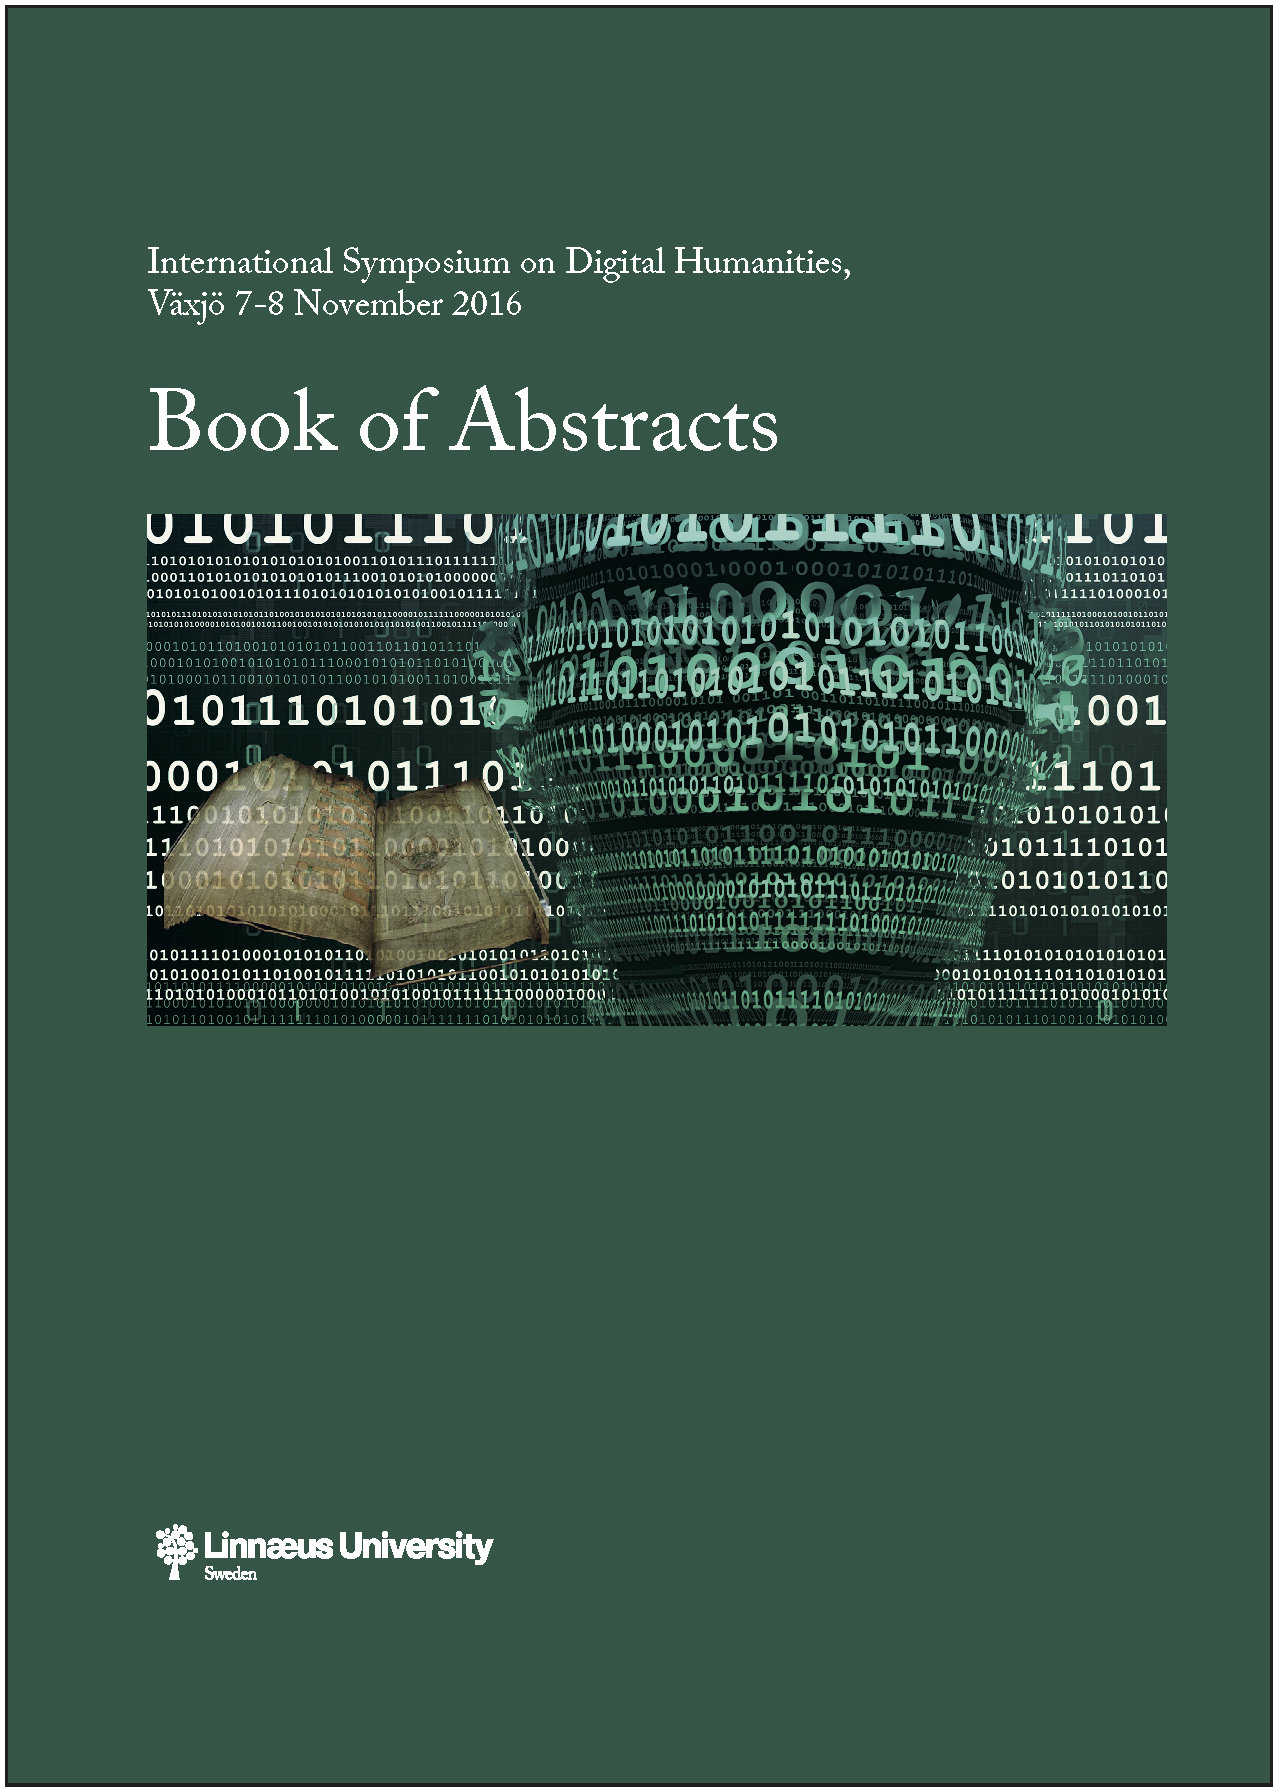 Front page of the International Symposium on Digital Humanities, Växjö 7-8 November 2016, Books of Abstracts